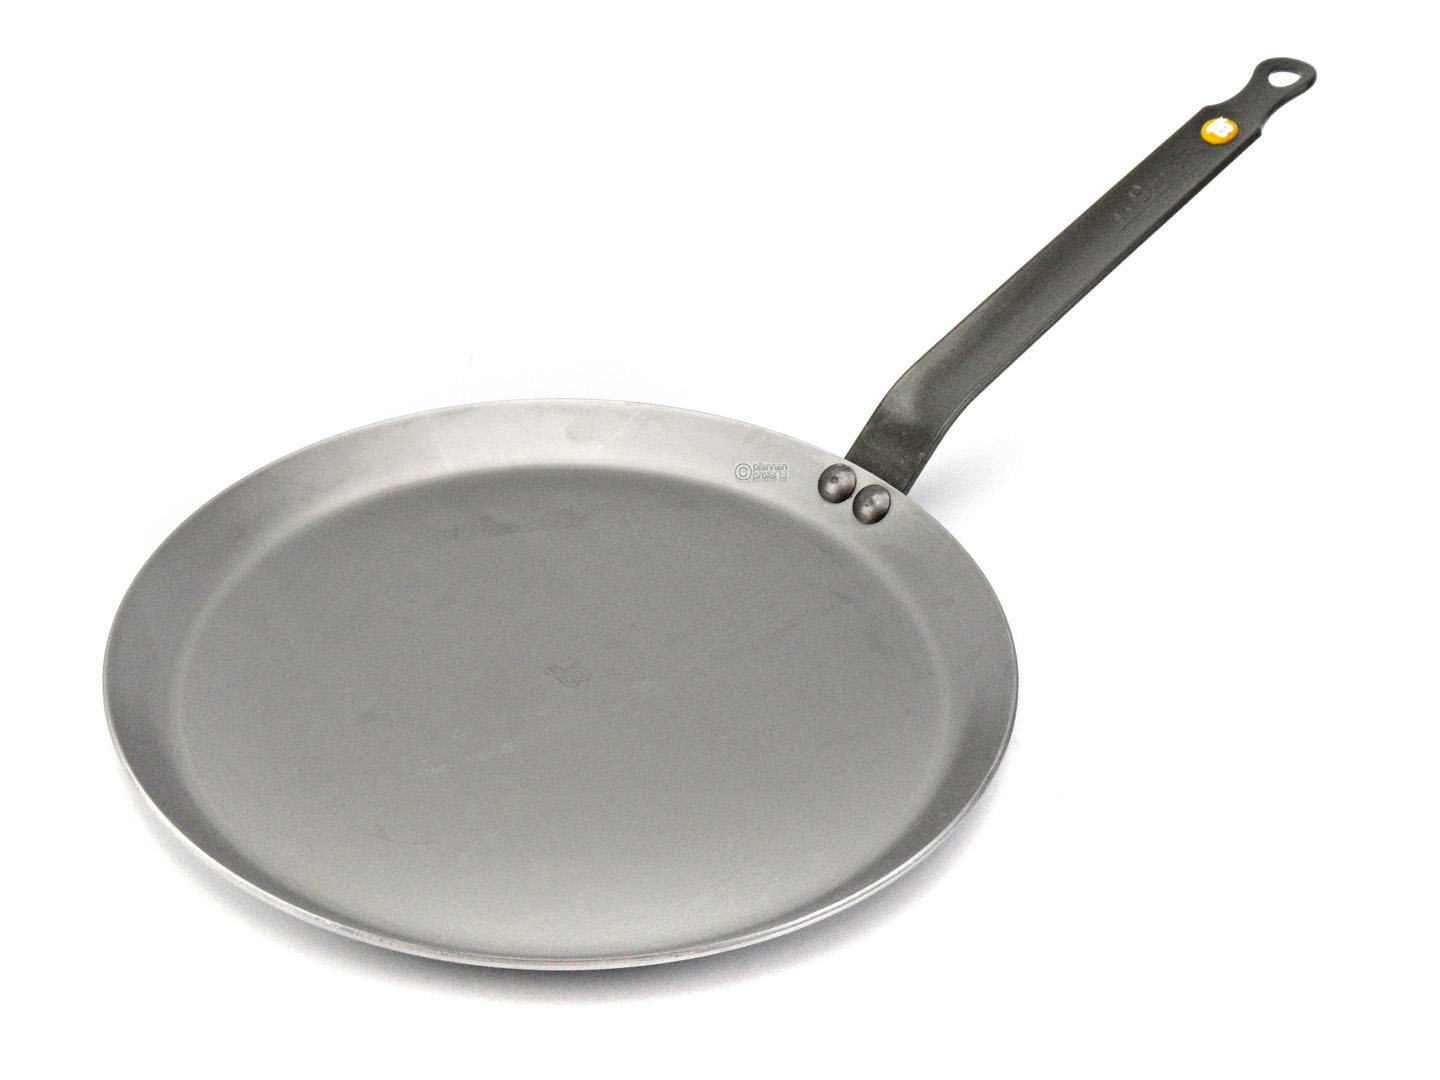 DE BUYER crêpe pan MINERAL B ELEMENT 24 cm iron pancake pan